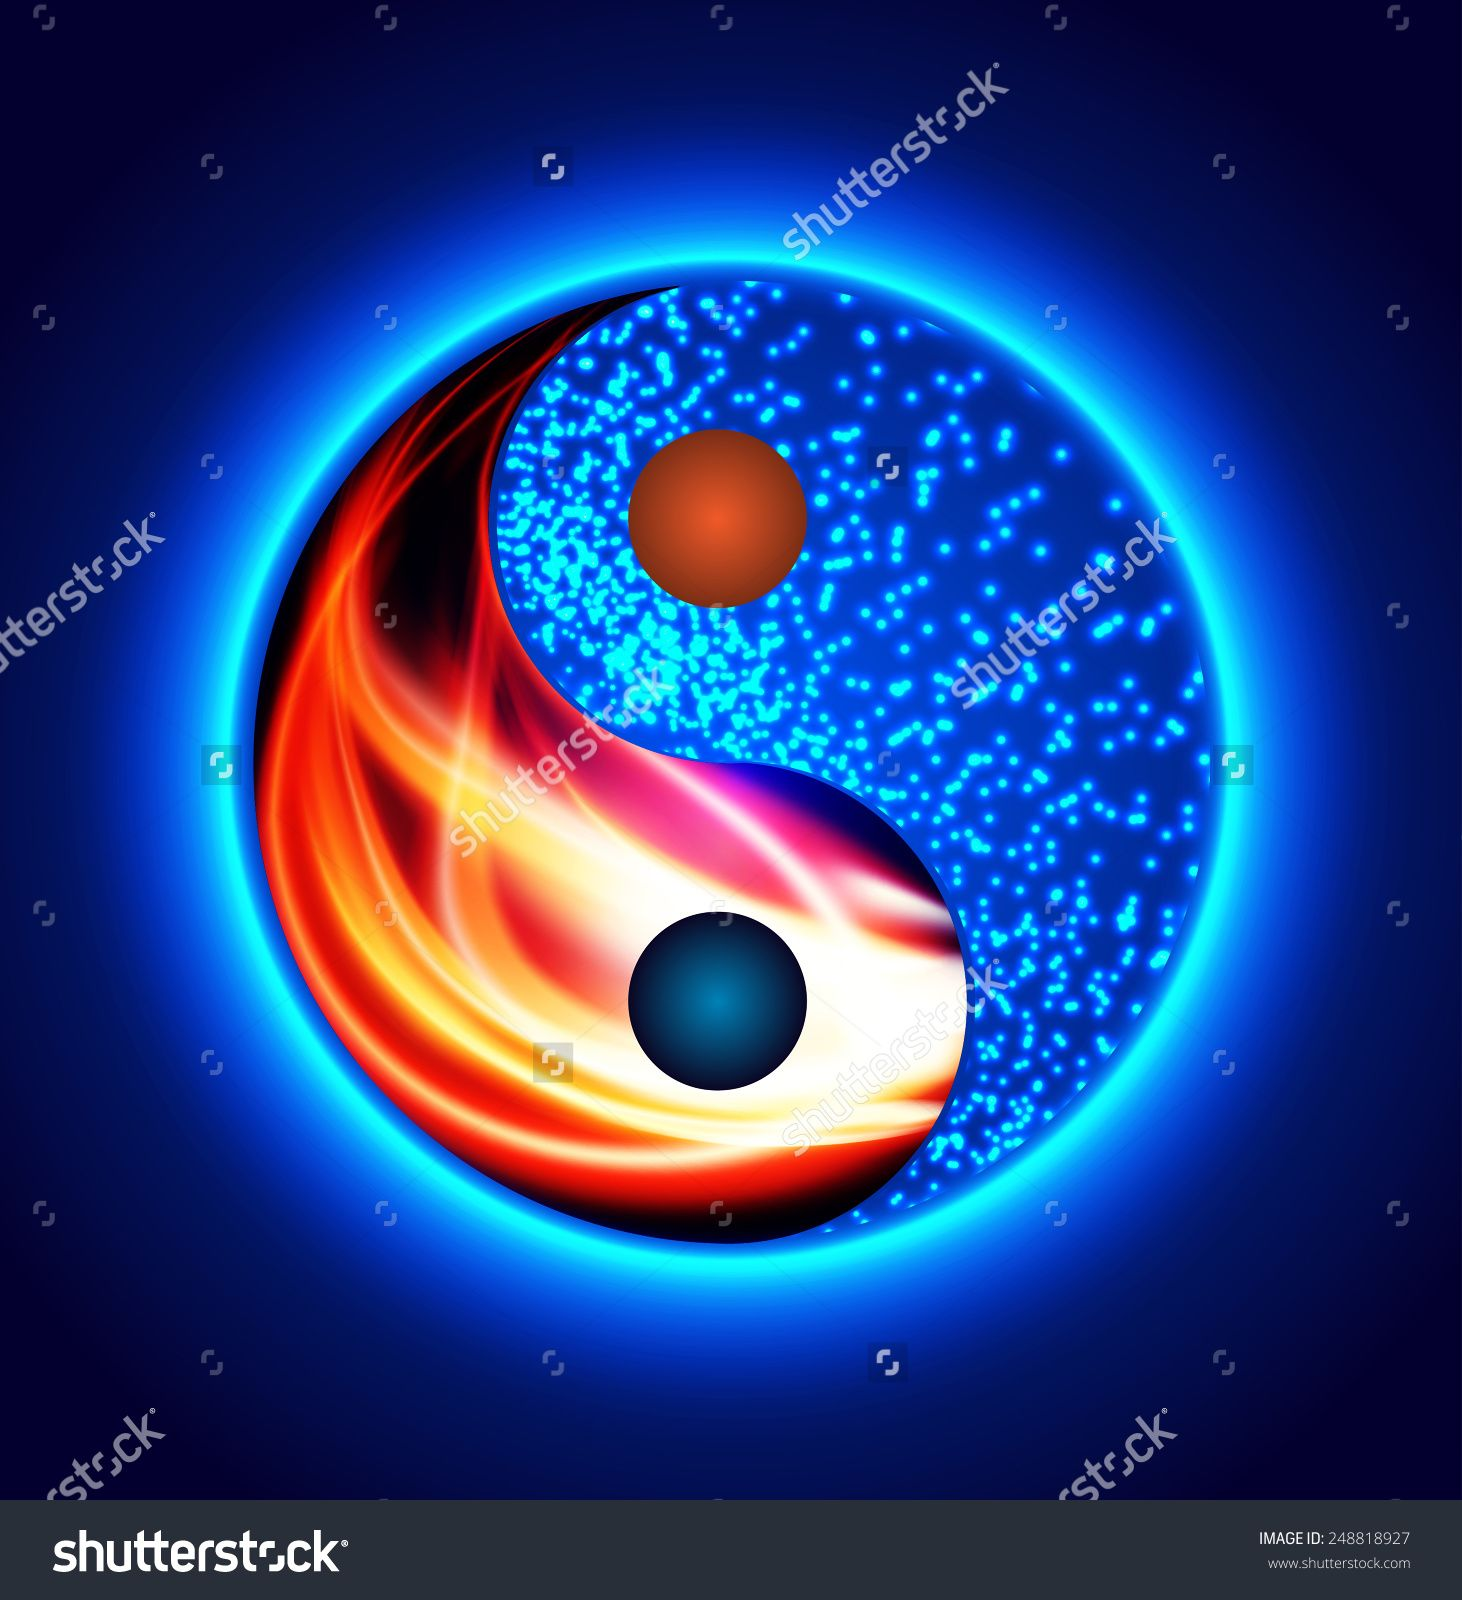 Yin Yang Symbol. Red Fire And Blue Water, Opposite